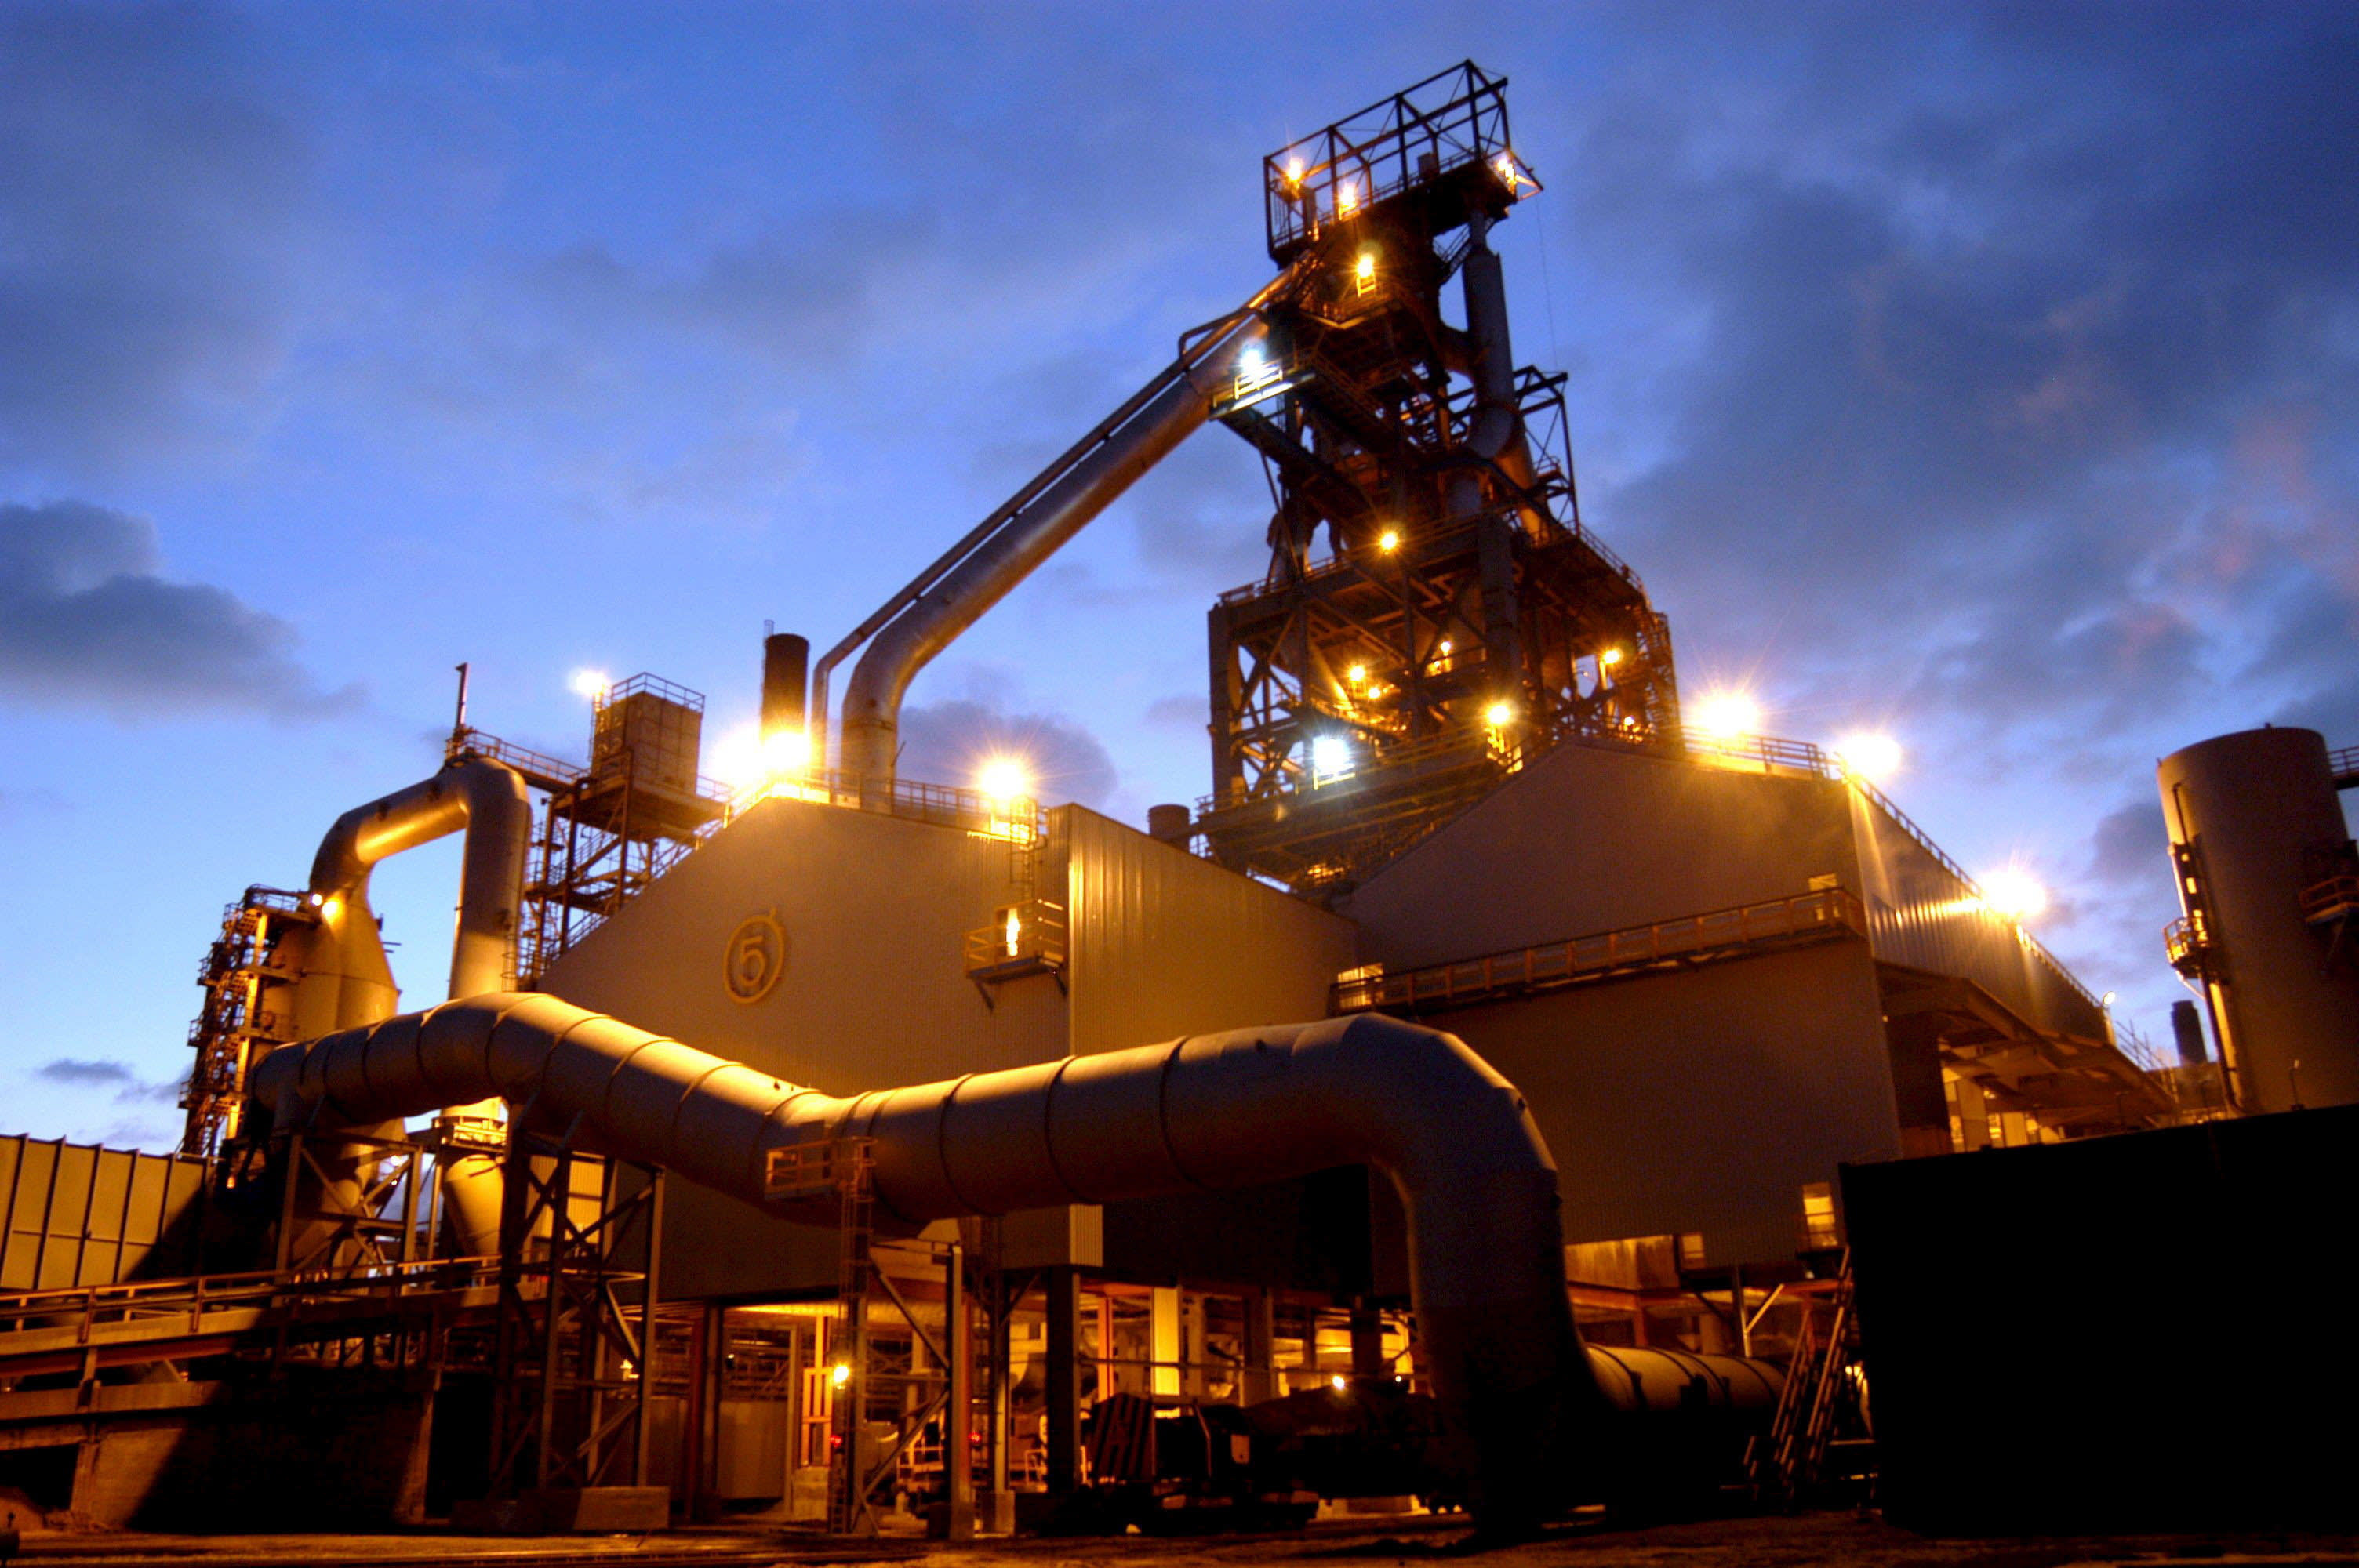 What lessons can we learn from British Steel?